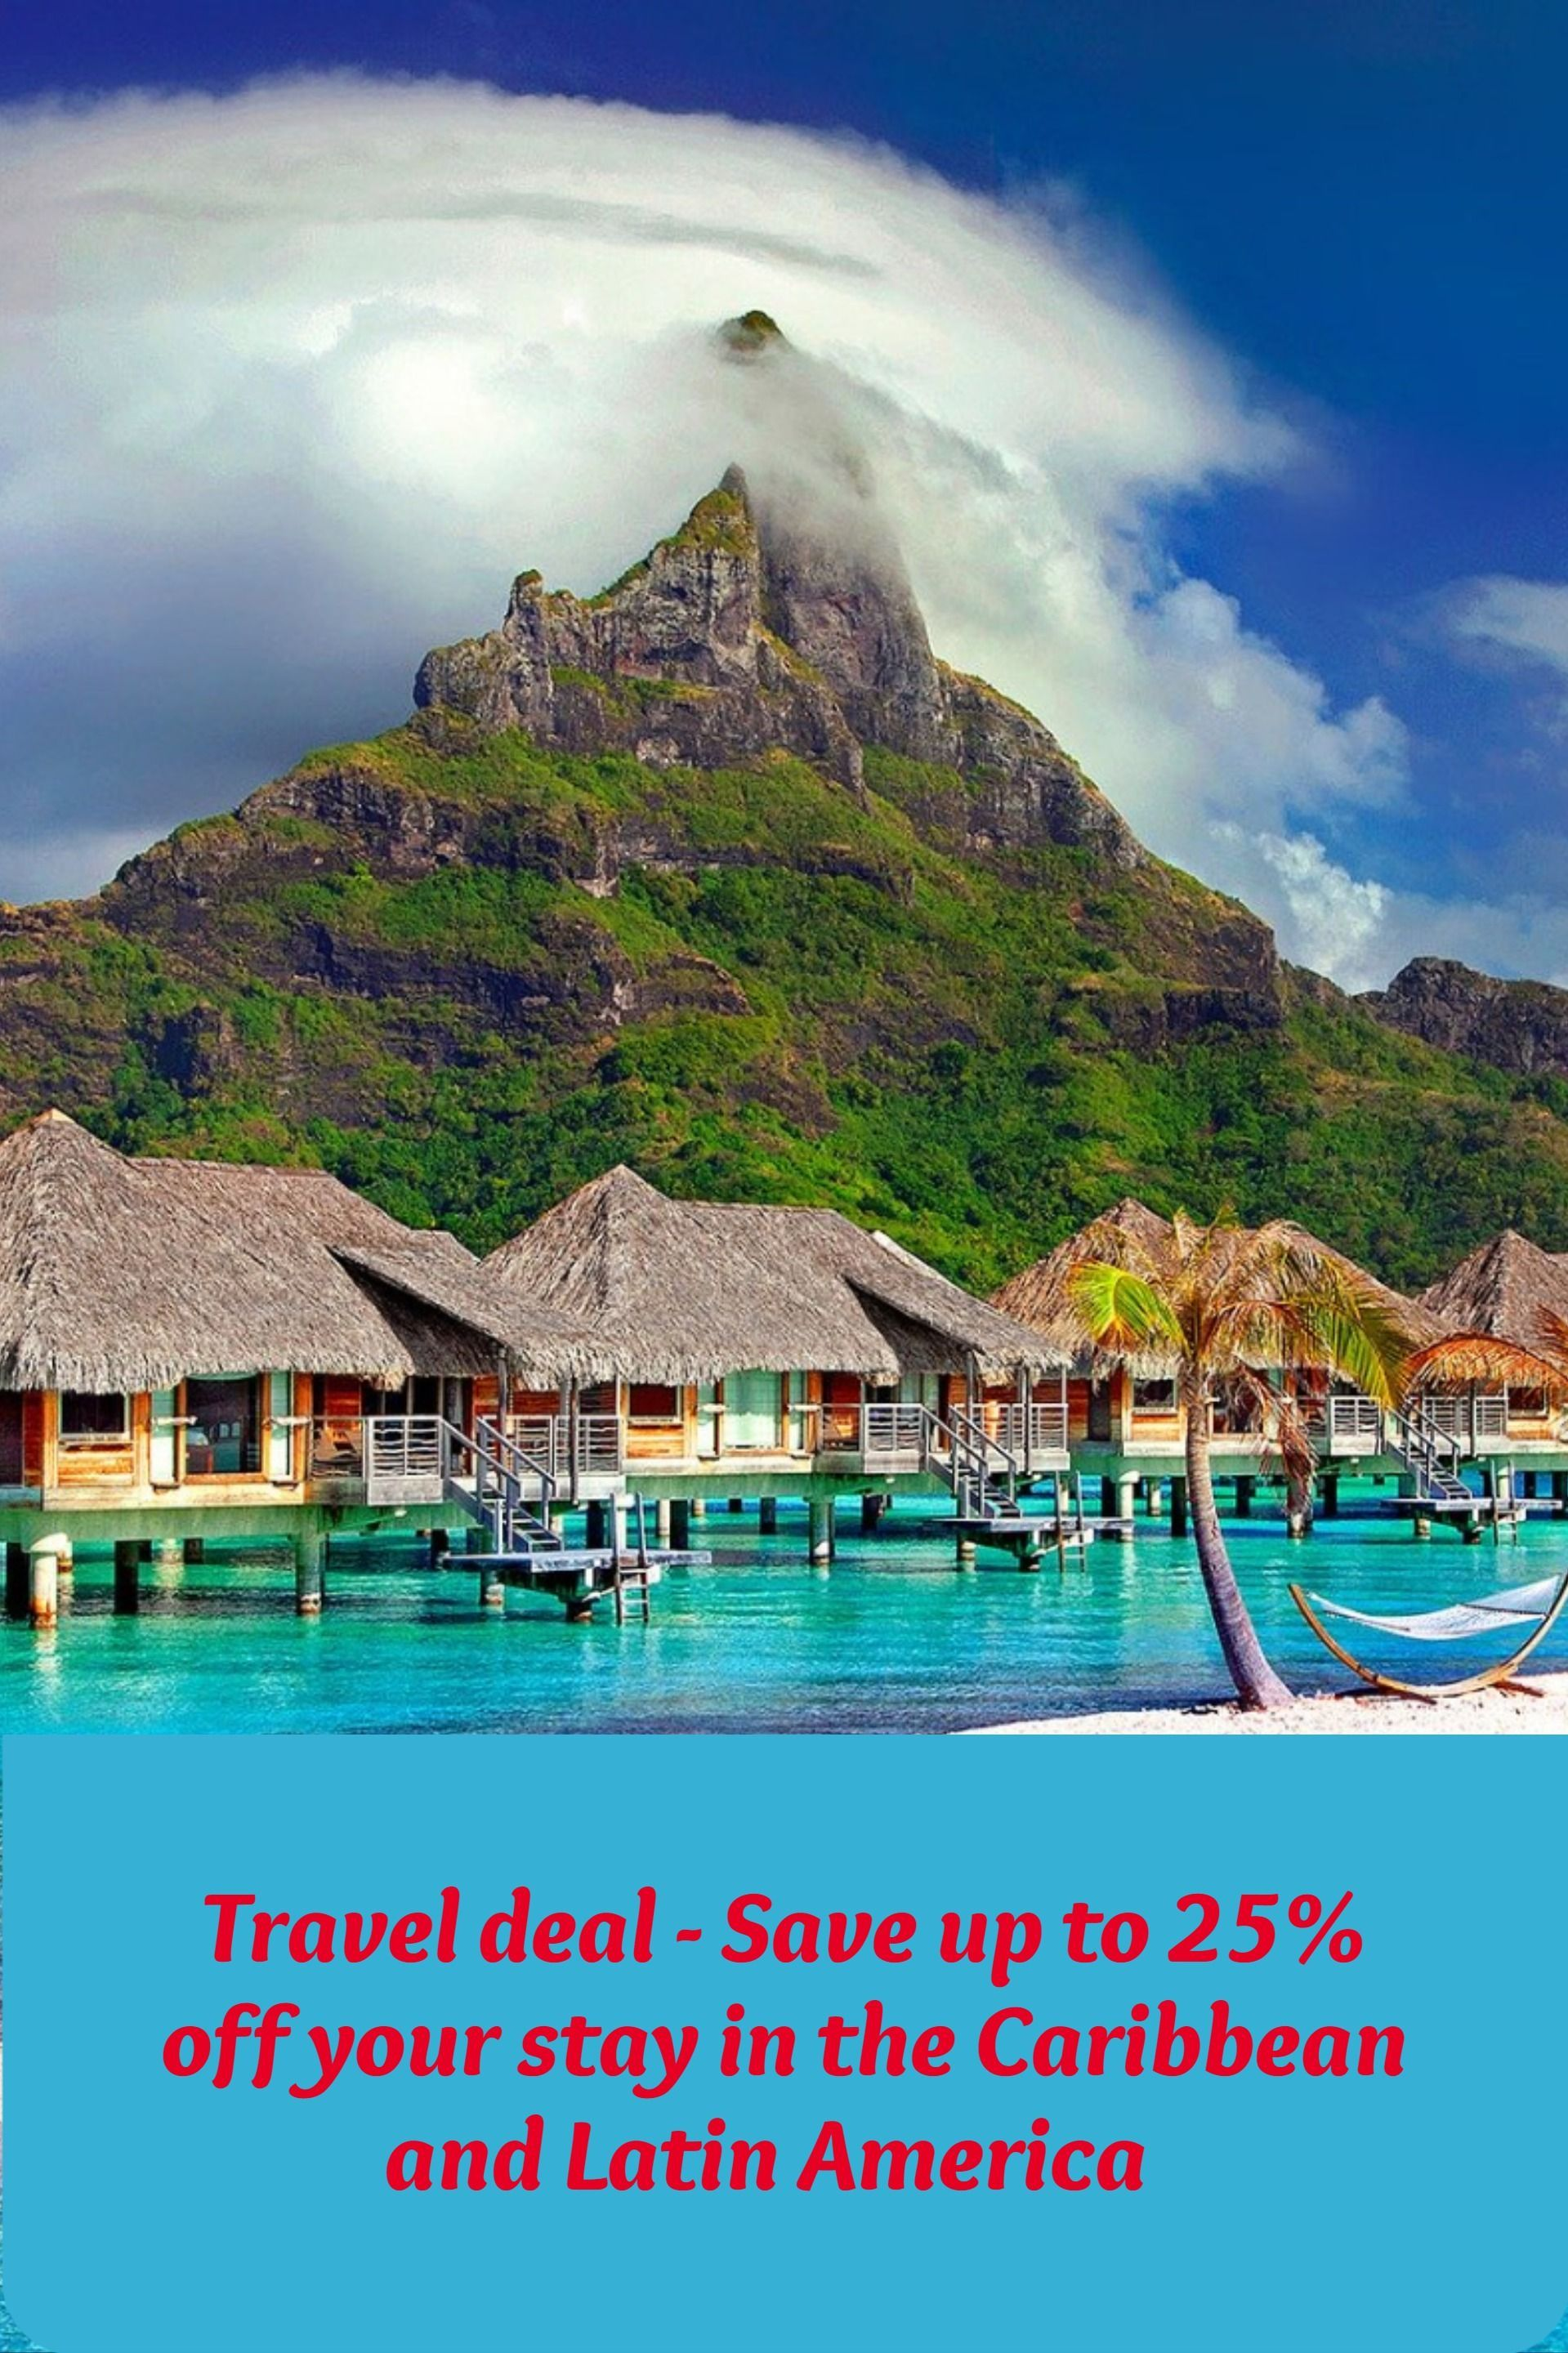 Travel deal - Save up to 25% off your stay in the Caribbean and Latin America #latinamericatravel Book in advance and save up to 25% off your stay in the Caribbean and Latin America. Use the code ADP for booking. Deadline: December 30, 2019. Click the link to know more. #traveldeals #affiliate #marriott #marriotthotels #marriottbonvoy #marriotthotelsrooms #marriottresorts #traveldealscheap #christmasgift